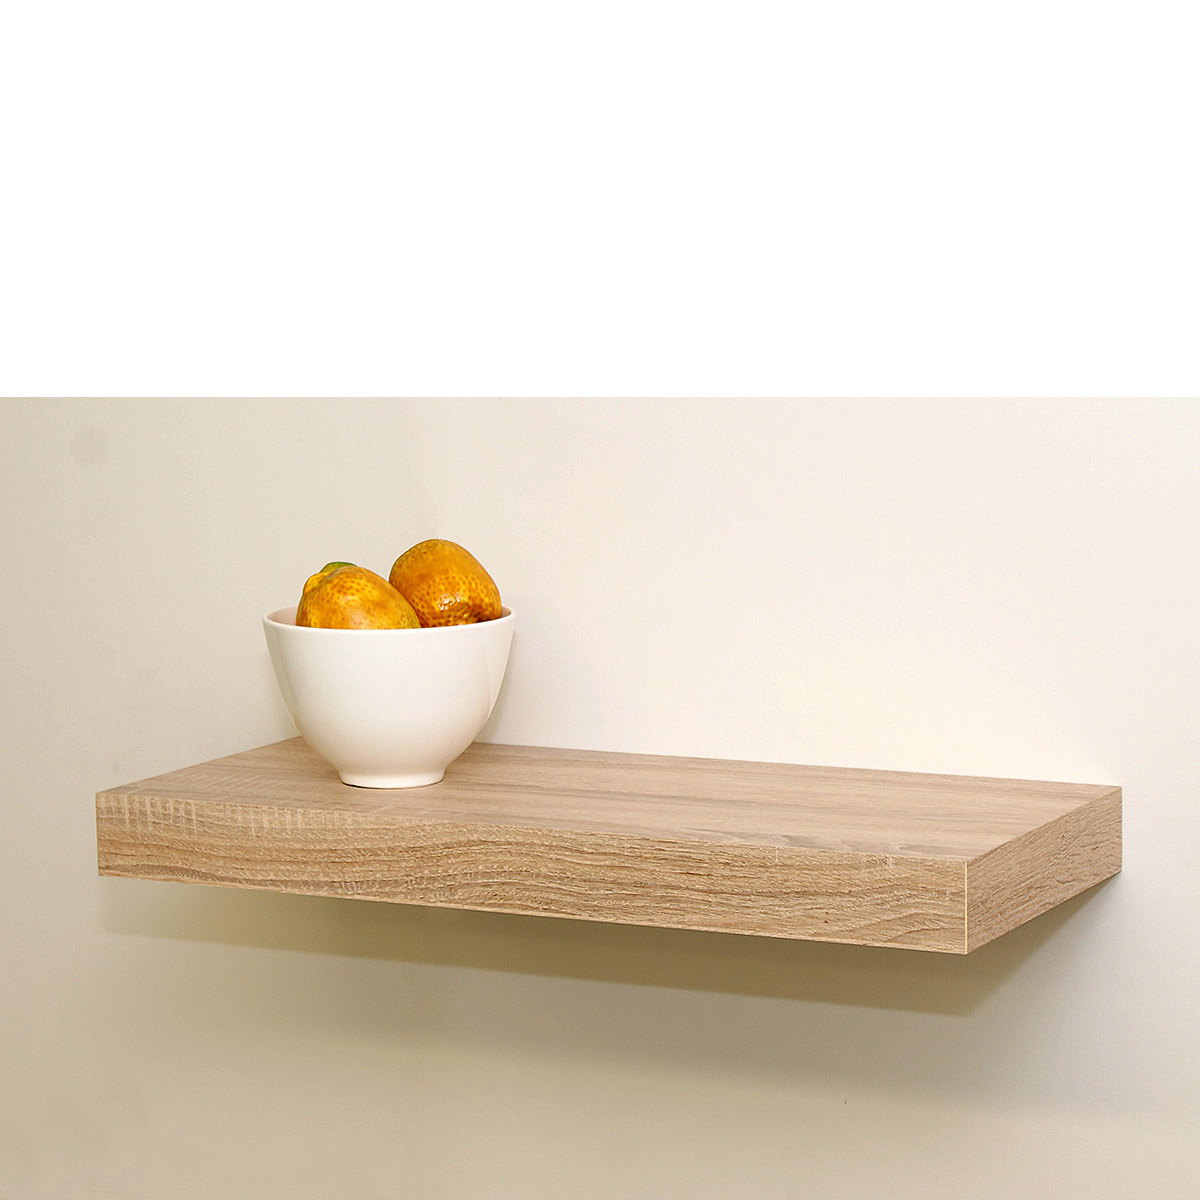 Oak Floating Shelf Kit 570x250x50mm - Mastershelf